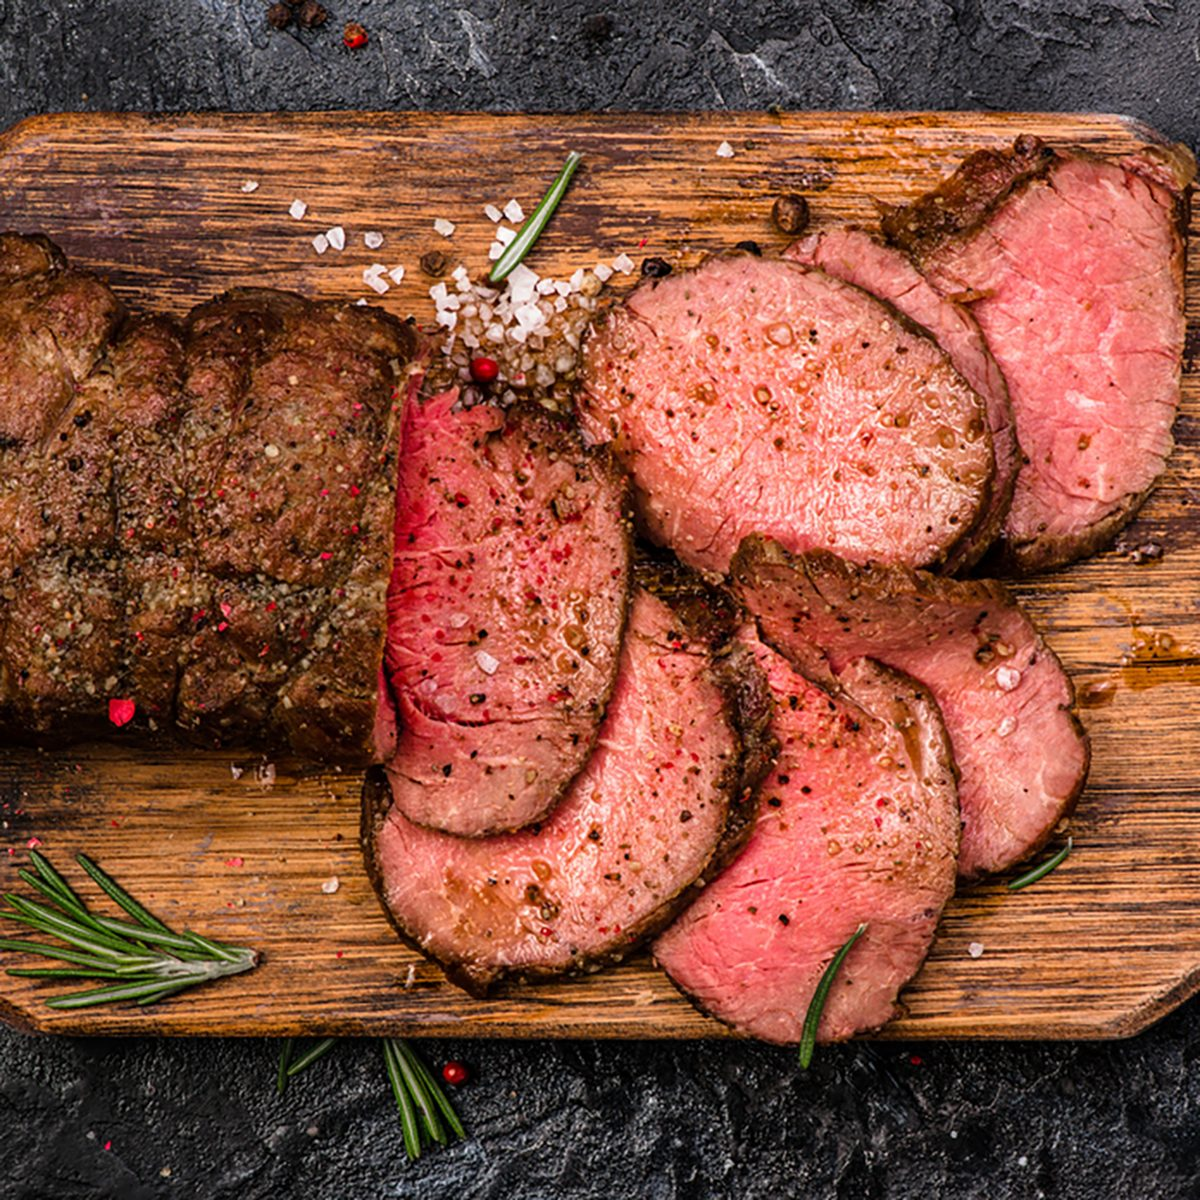 Roast beef on cutting board with salt and pepper.